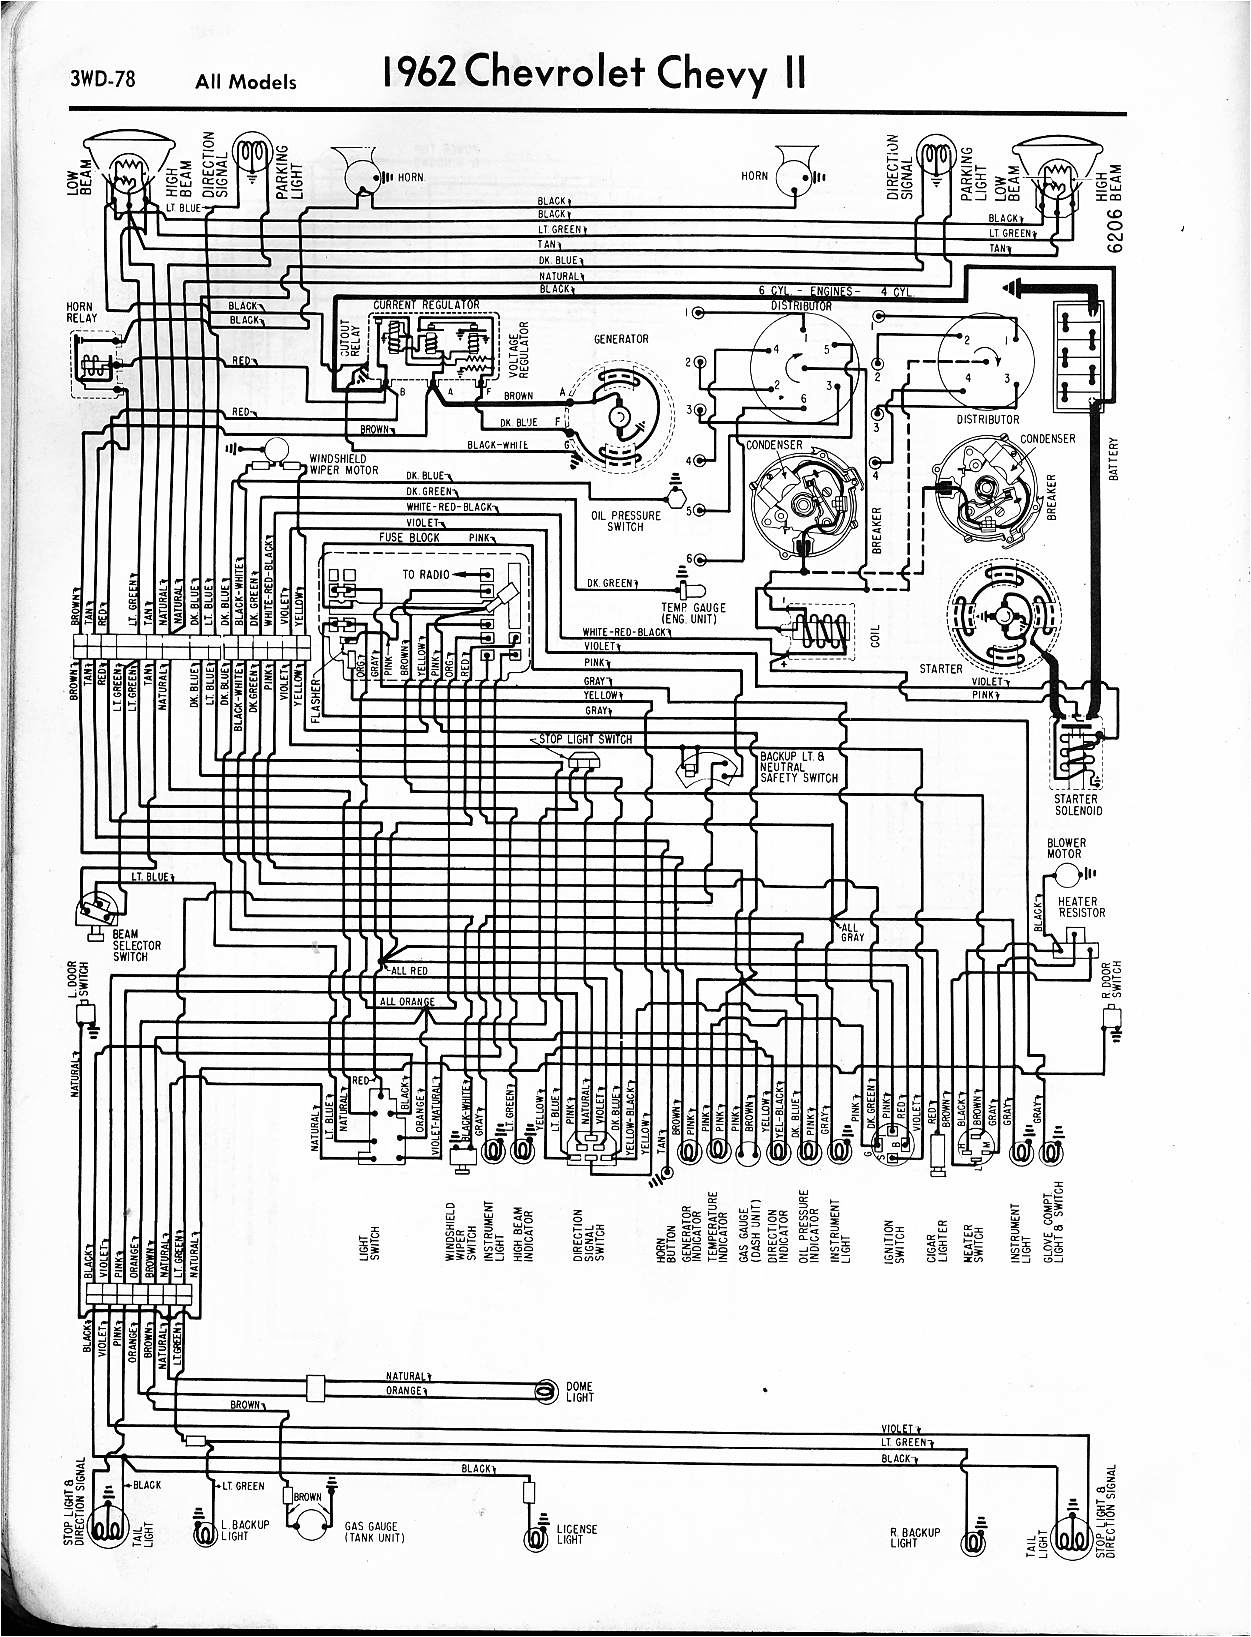 impala wiring diagram 62chev2 nova forward theft bypass code for free abs gmc jpg